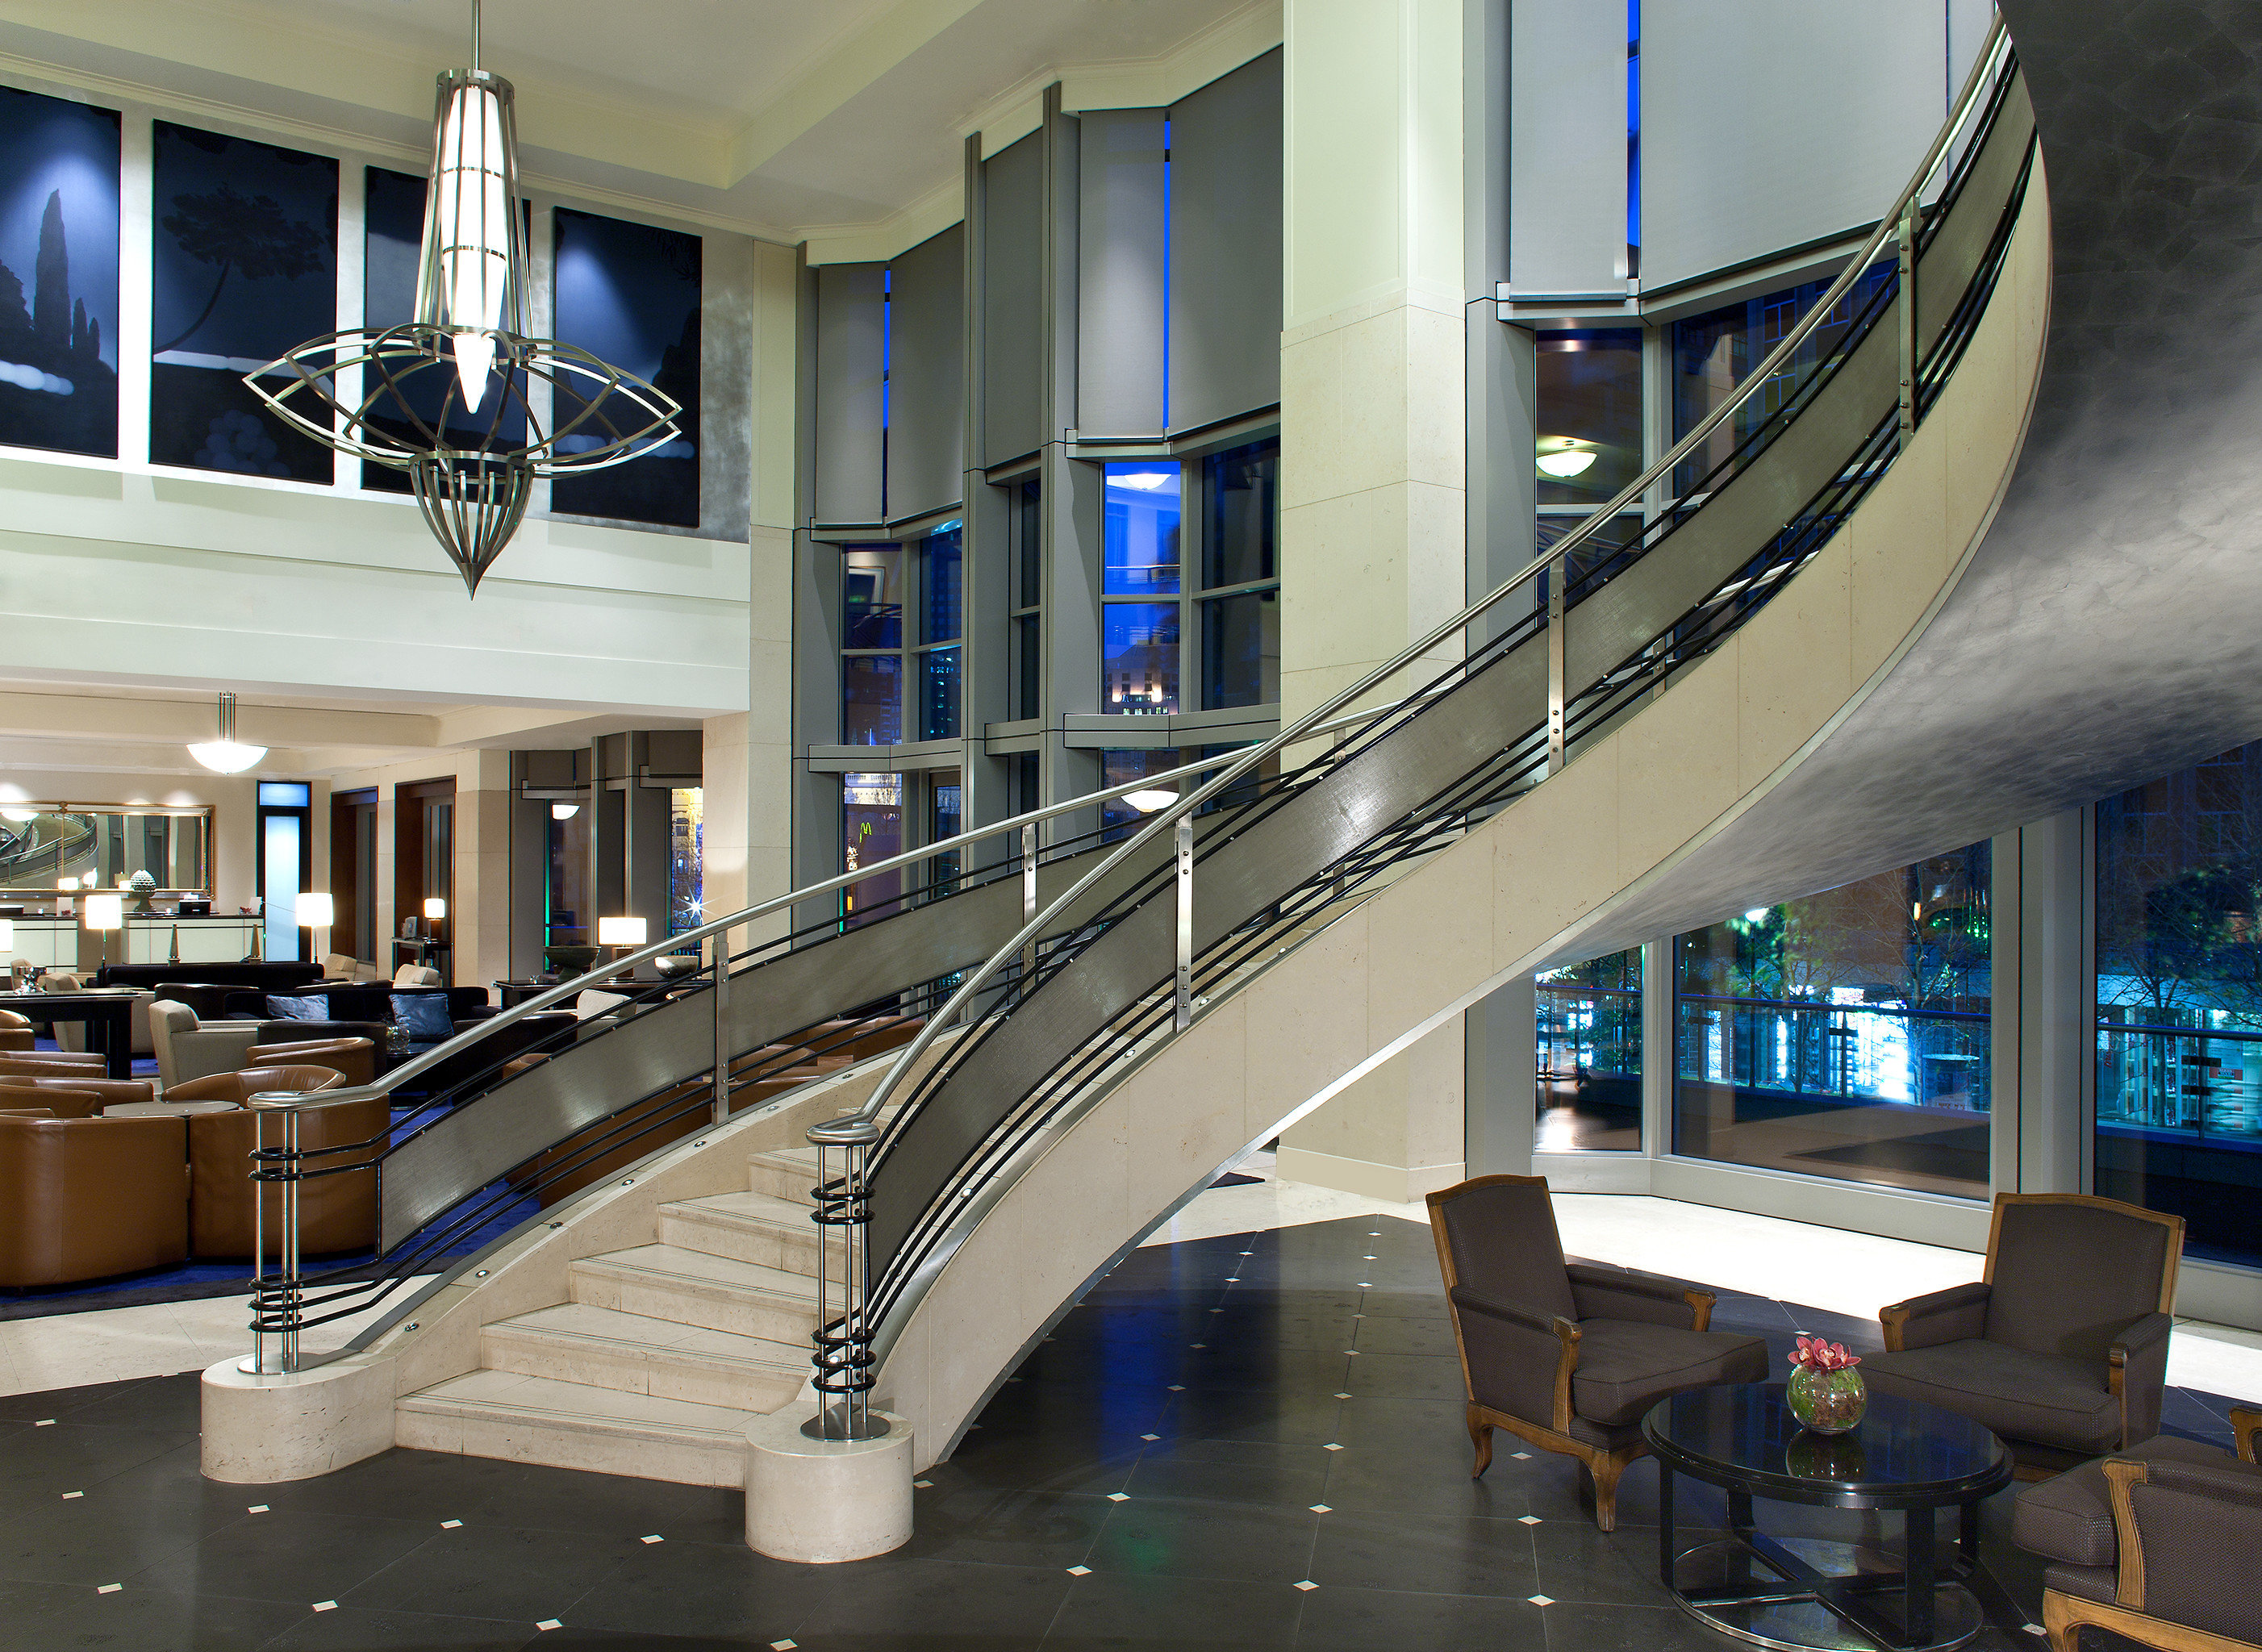 Lobby Lounge Luxury Modern shopping mall building Architecture public transport airport terminal headquarters convention center